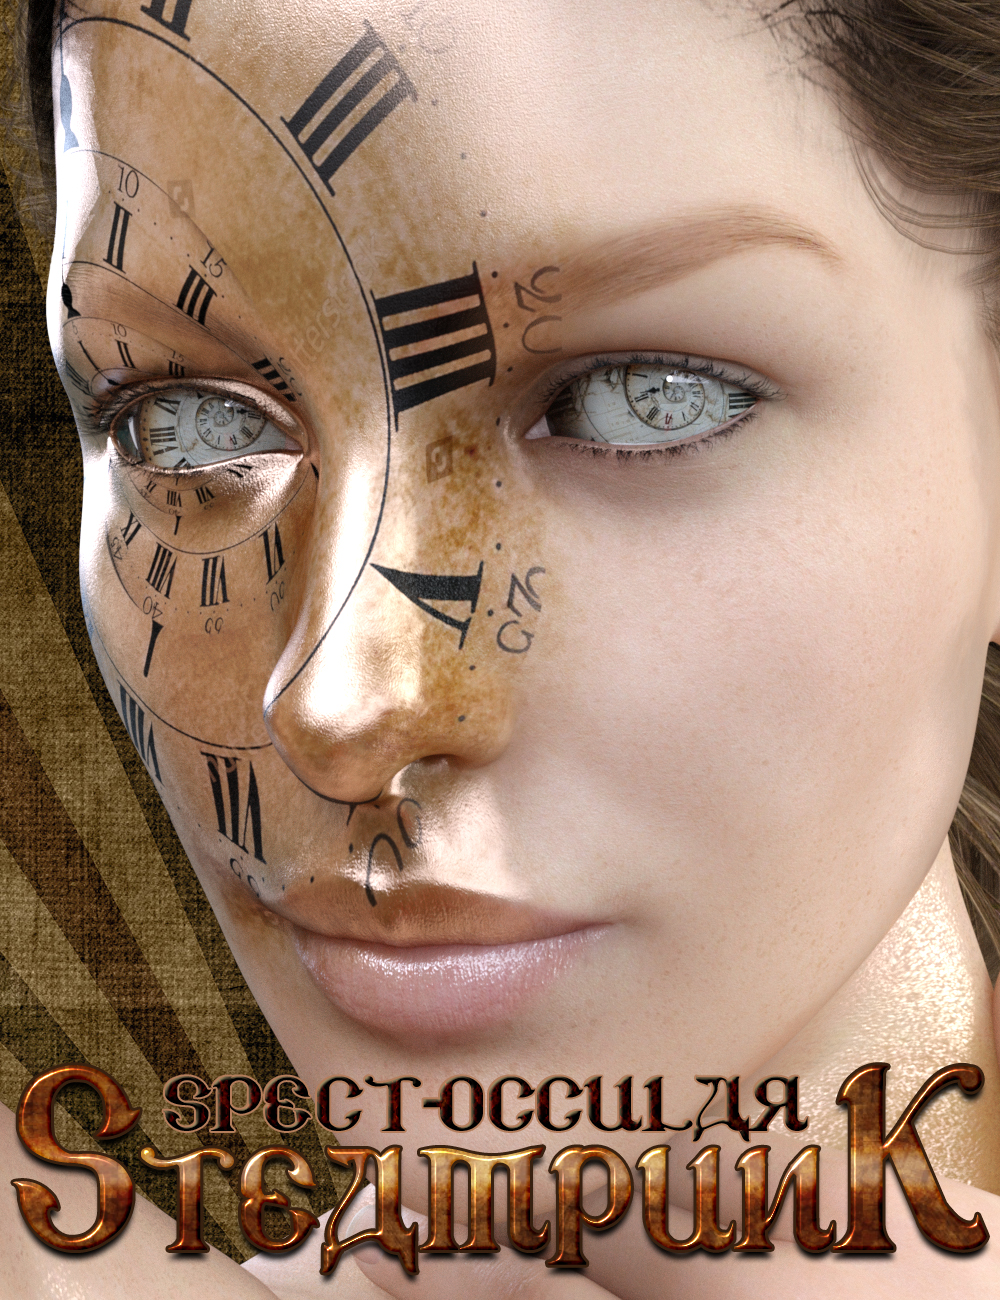 Hinky's Spect-Occulars - Steampunk Eyes for Genesis 8 by: SR3, 3D Models by Daz 3D